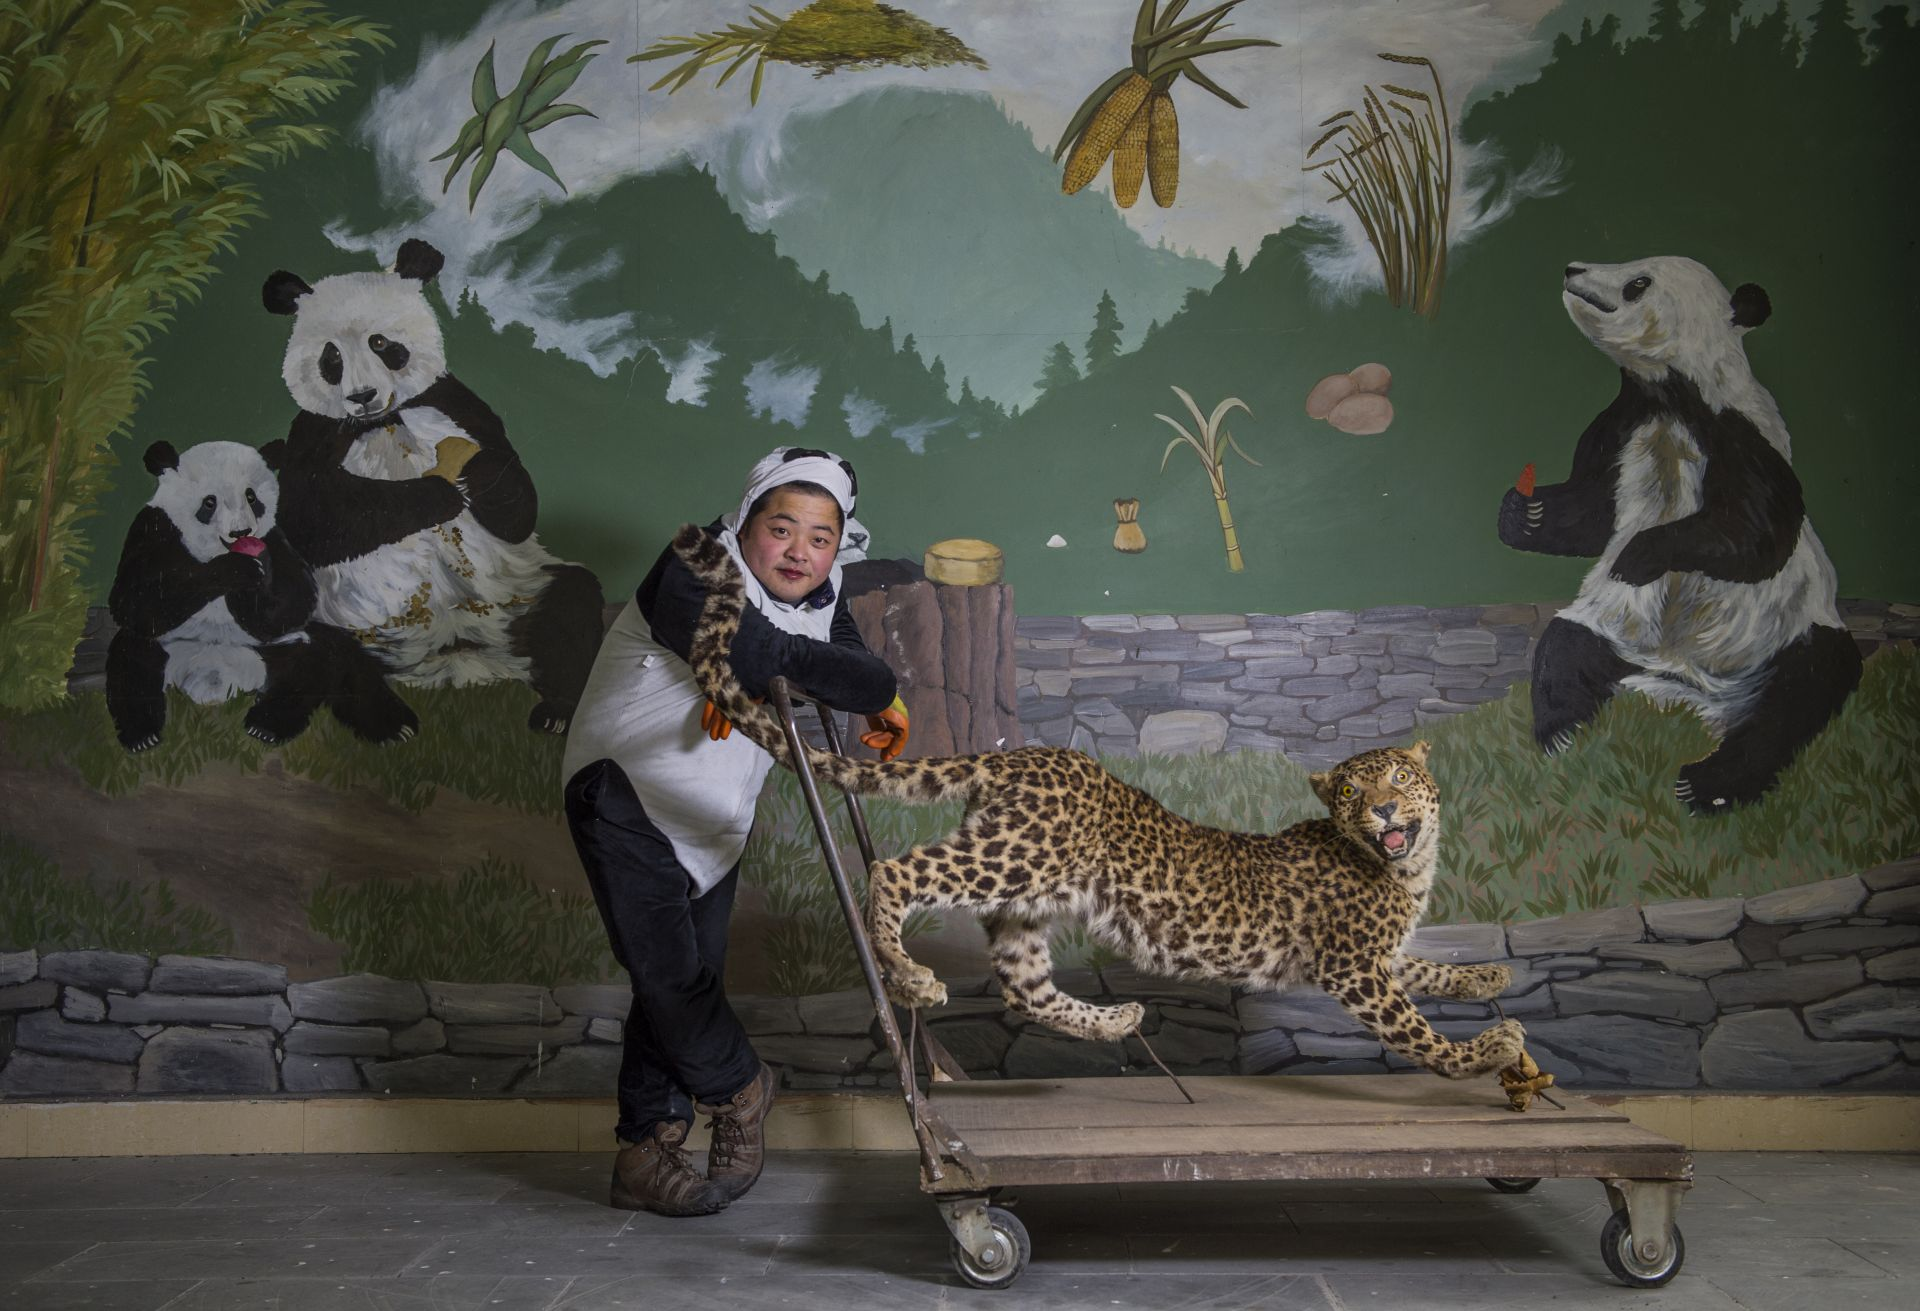 The Leopard Keeper